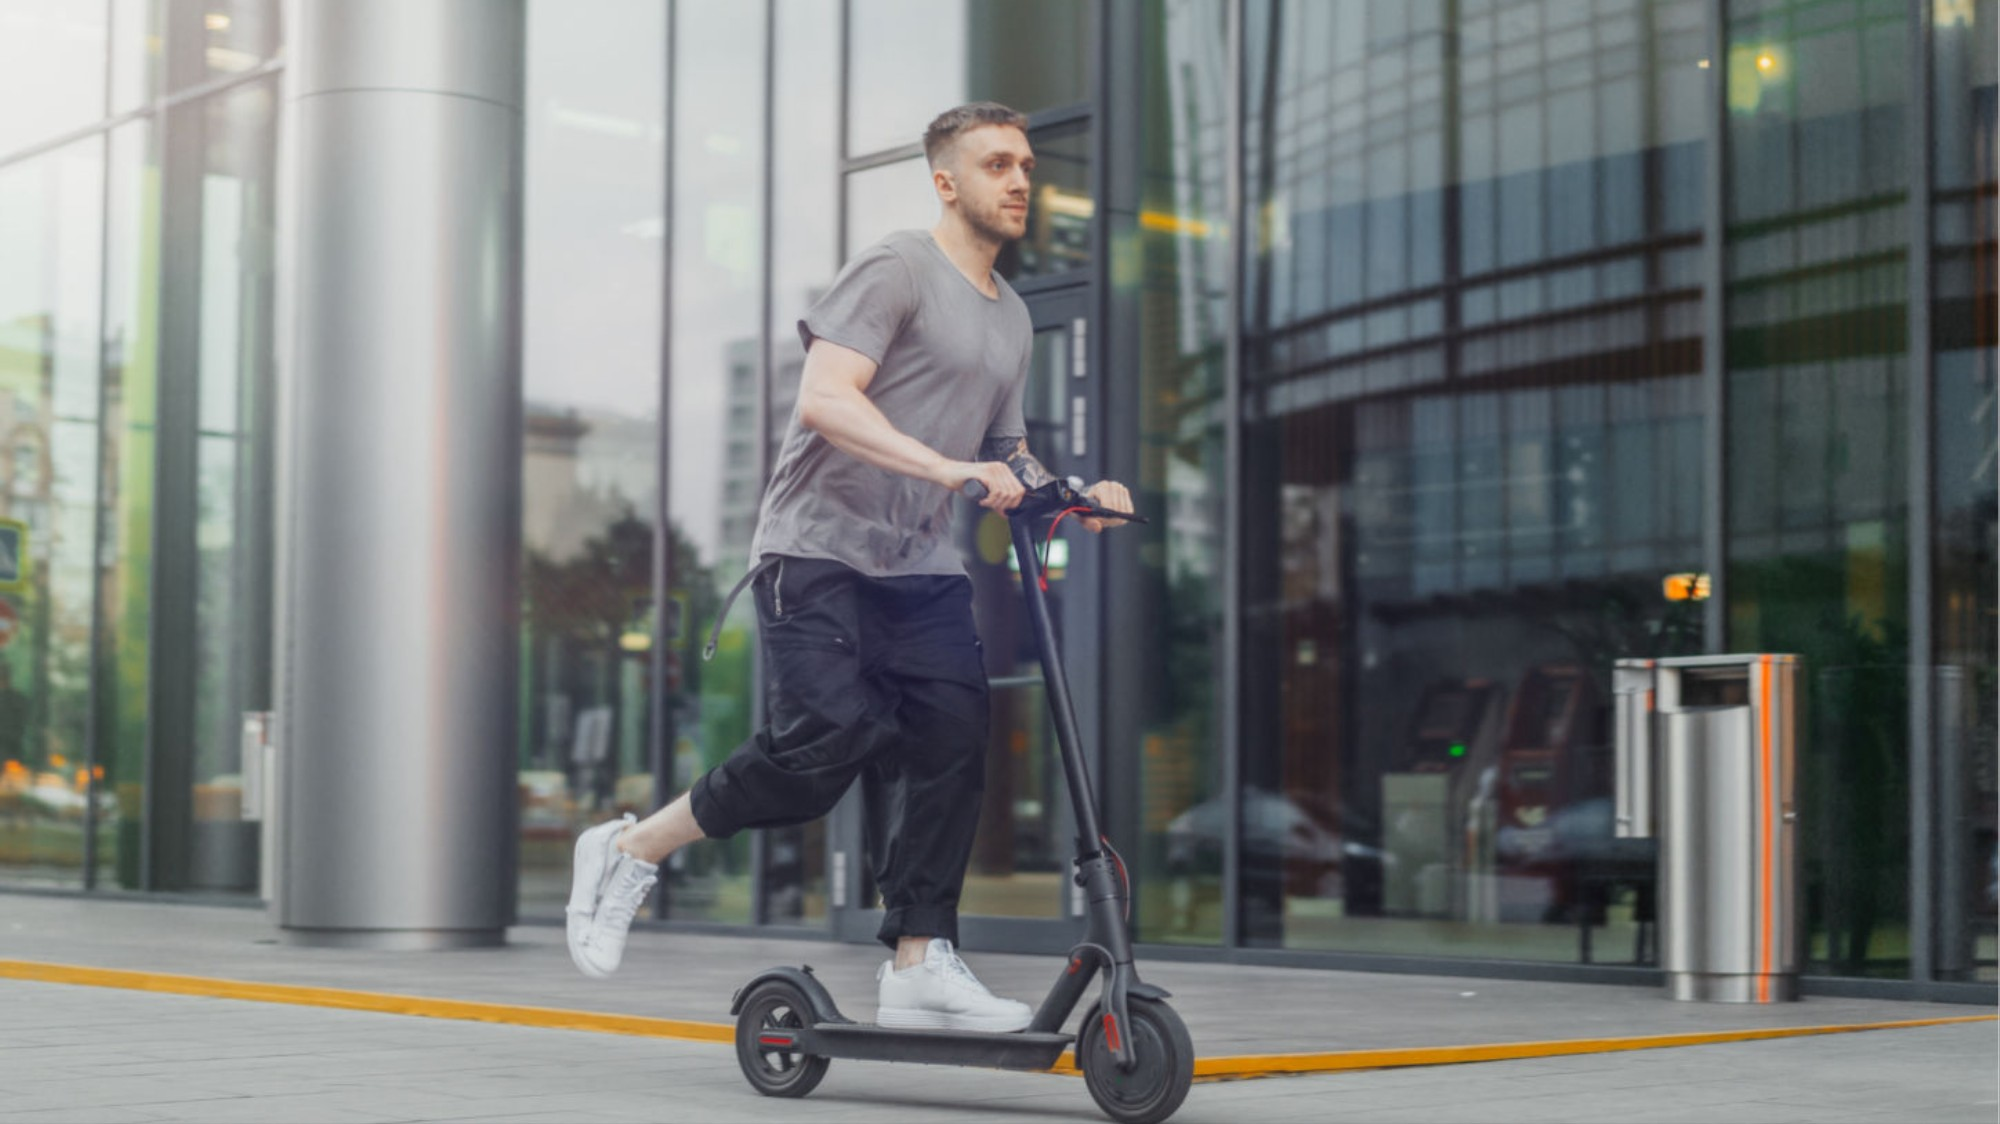 Scooter Companies Split on Giving Real-Time Location Data to